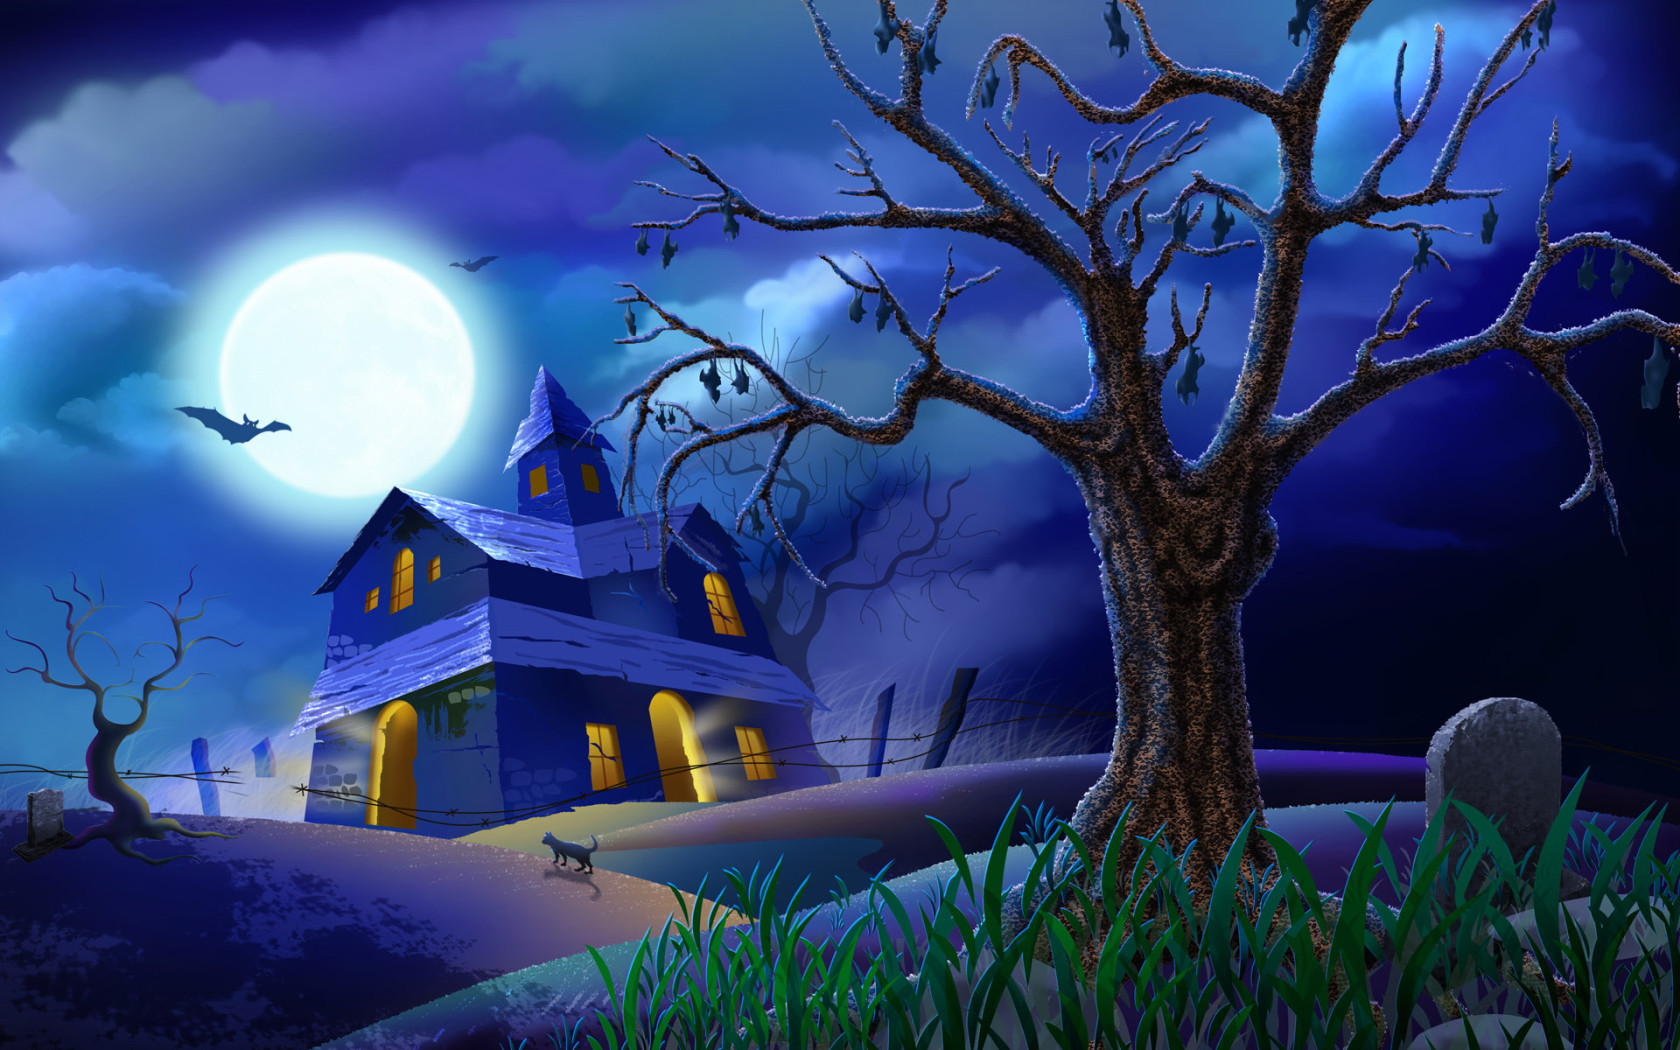 Good Wallpaper Halloween Screensaver - halloween-screensavers-21639-22179-hd-wallpapers  Snapshot_152118.jpg